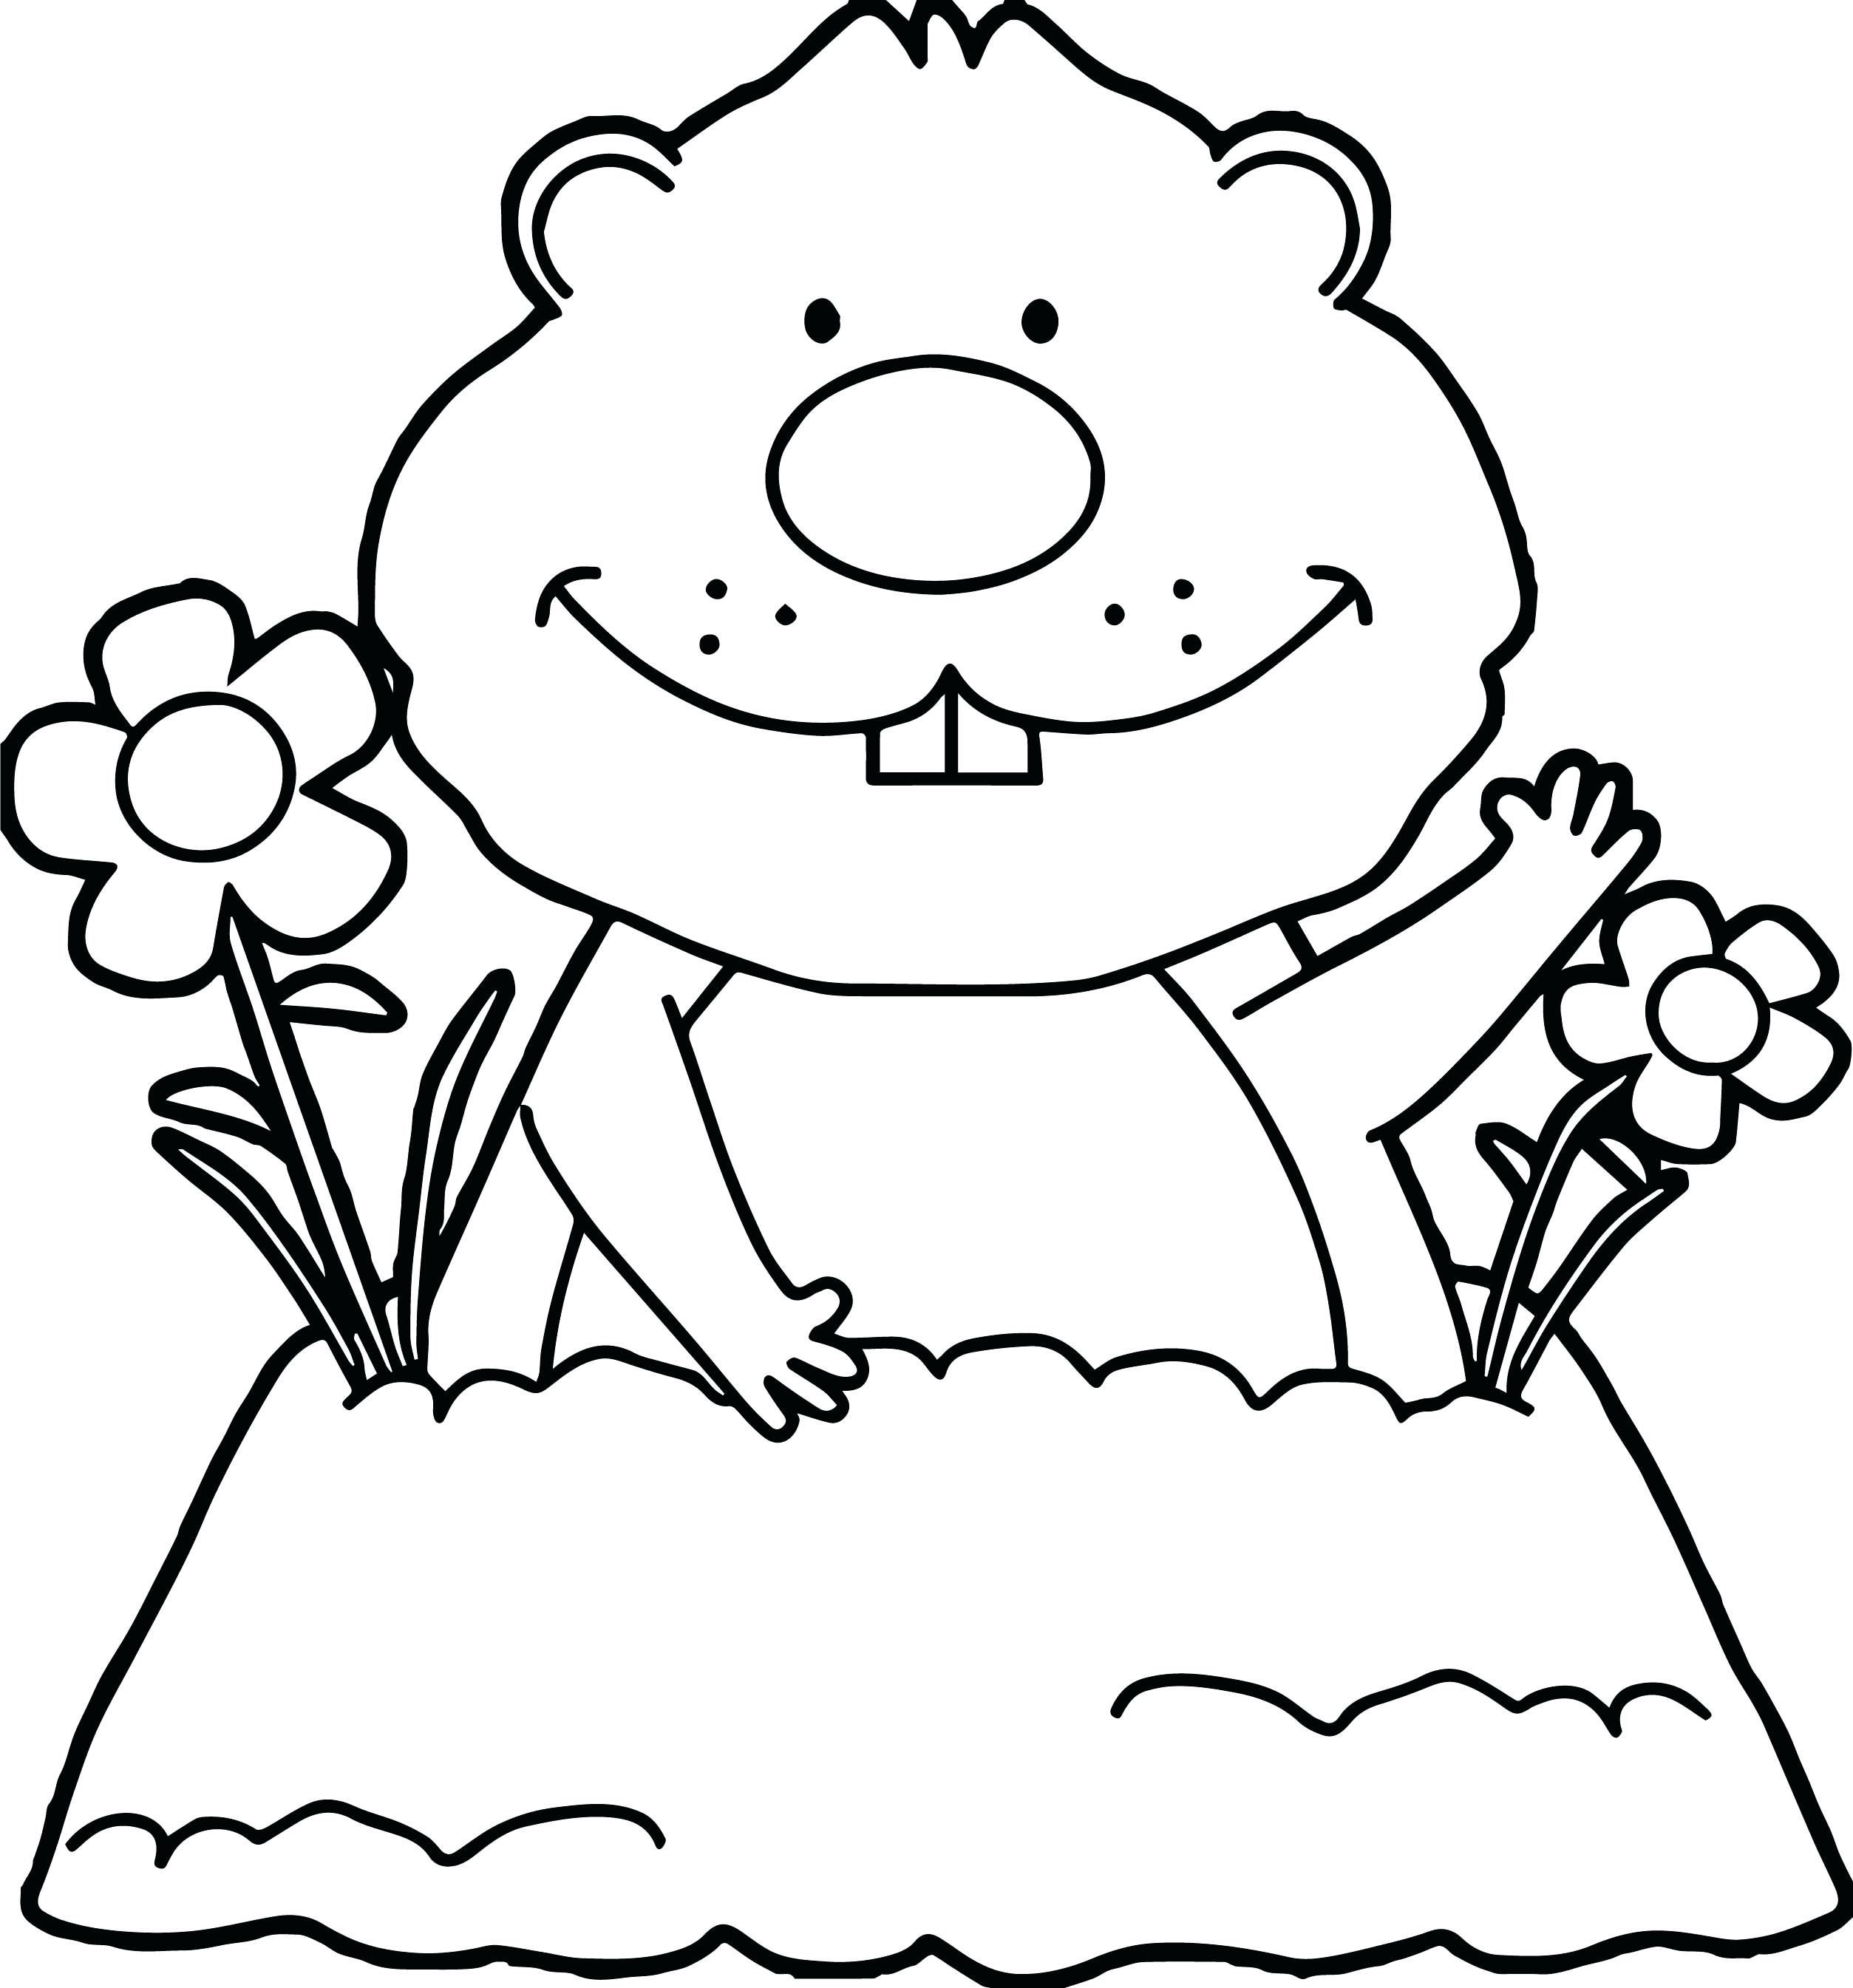 groundhog day coloring sheet – royaltyhairstore.com | 2690x2507